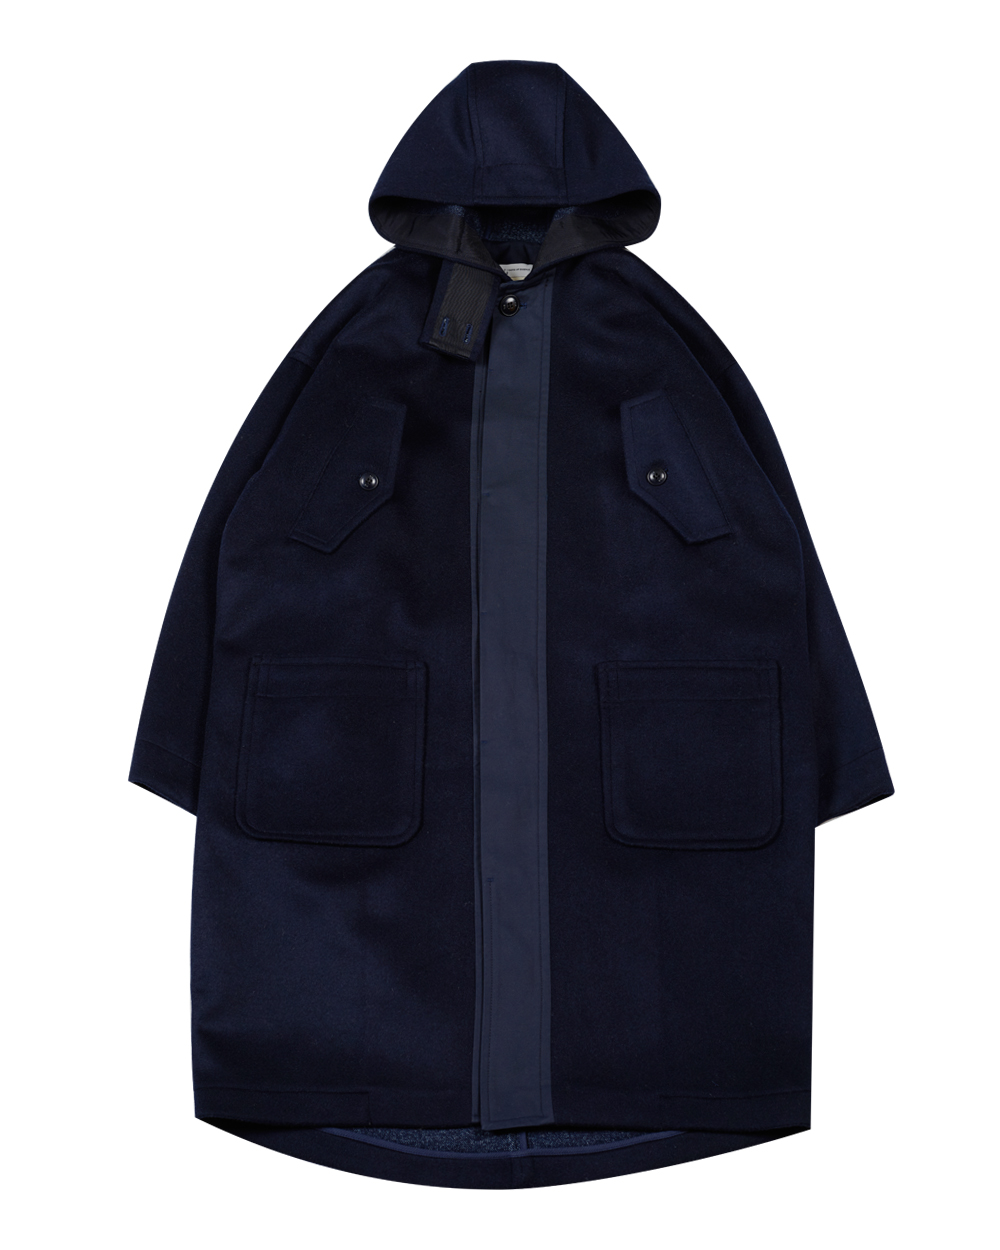 HOODED+WOOL+NAVY+FRONT.jpg